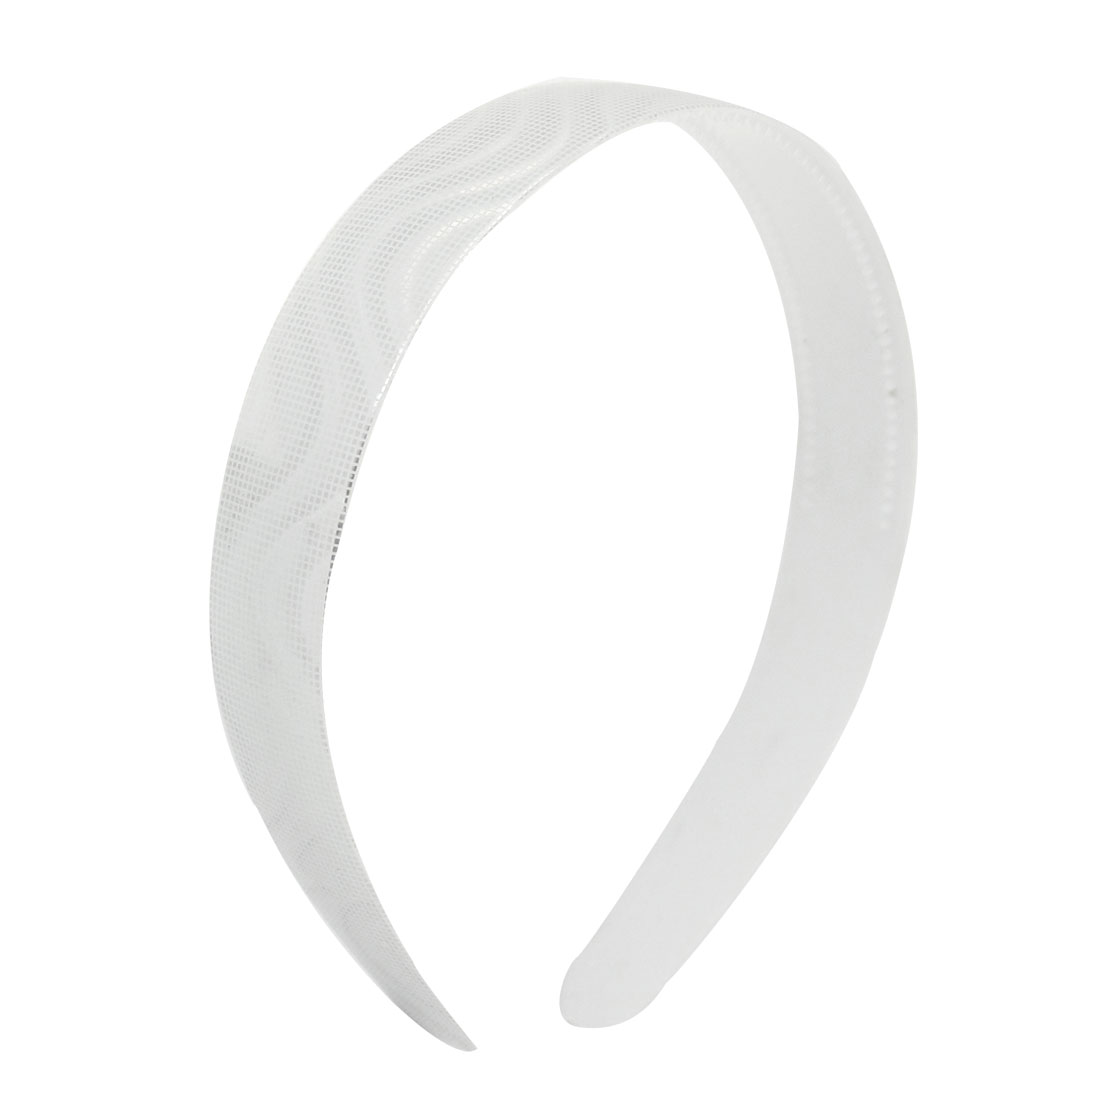 Ladies Plastic Check Prints Flexible Hairband Hair Hoop White